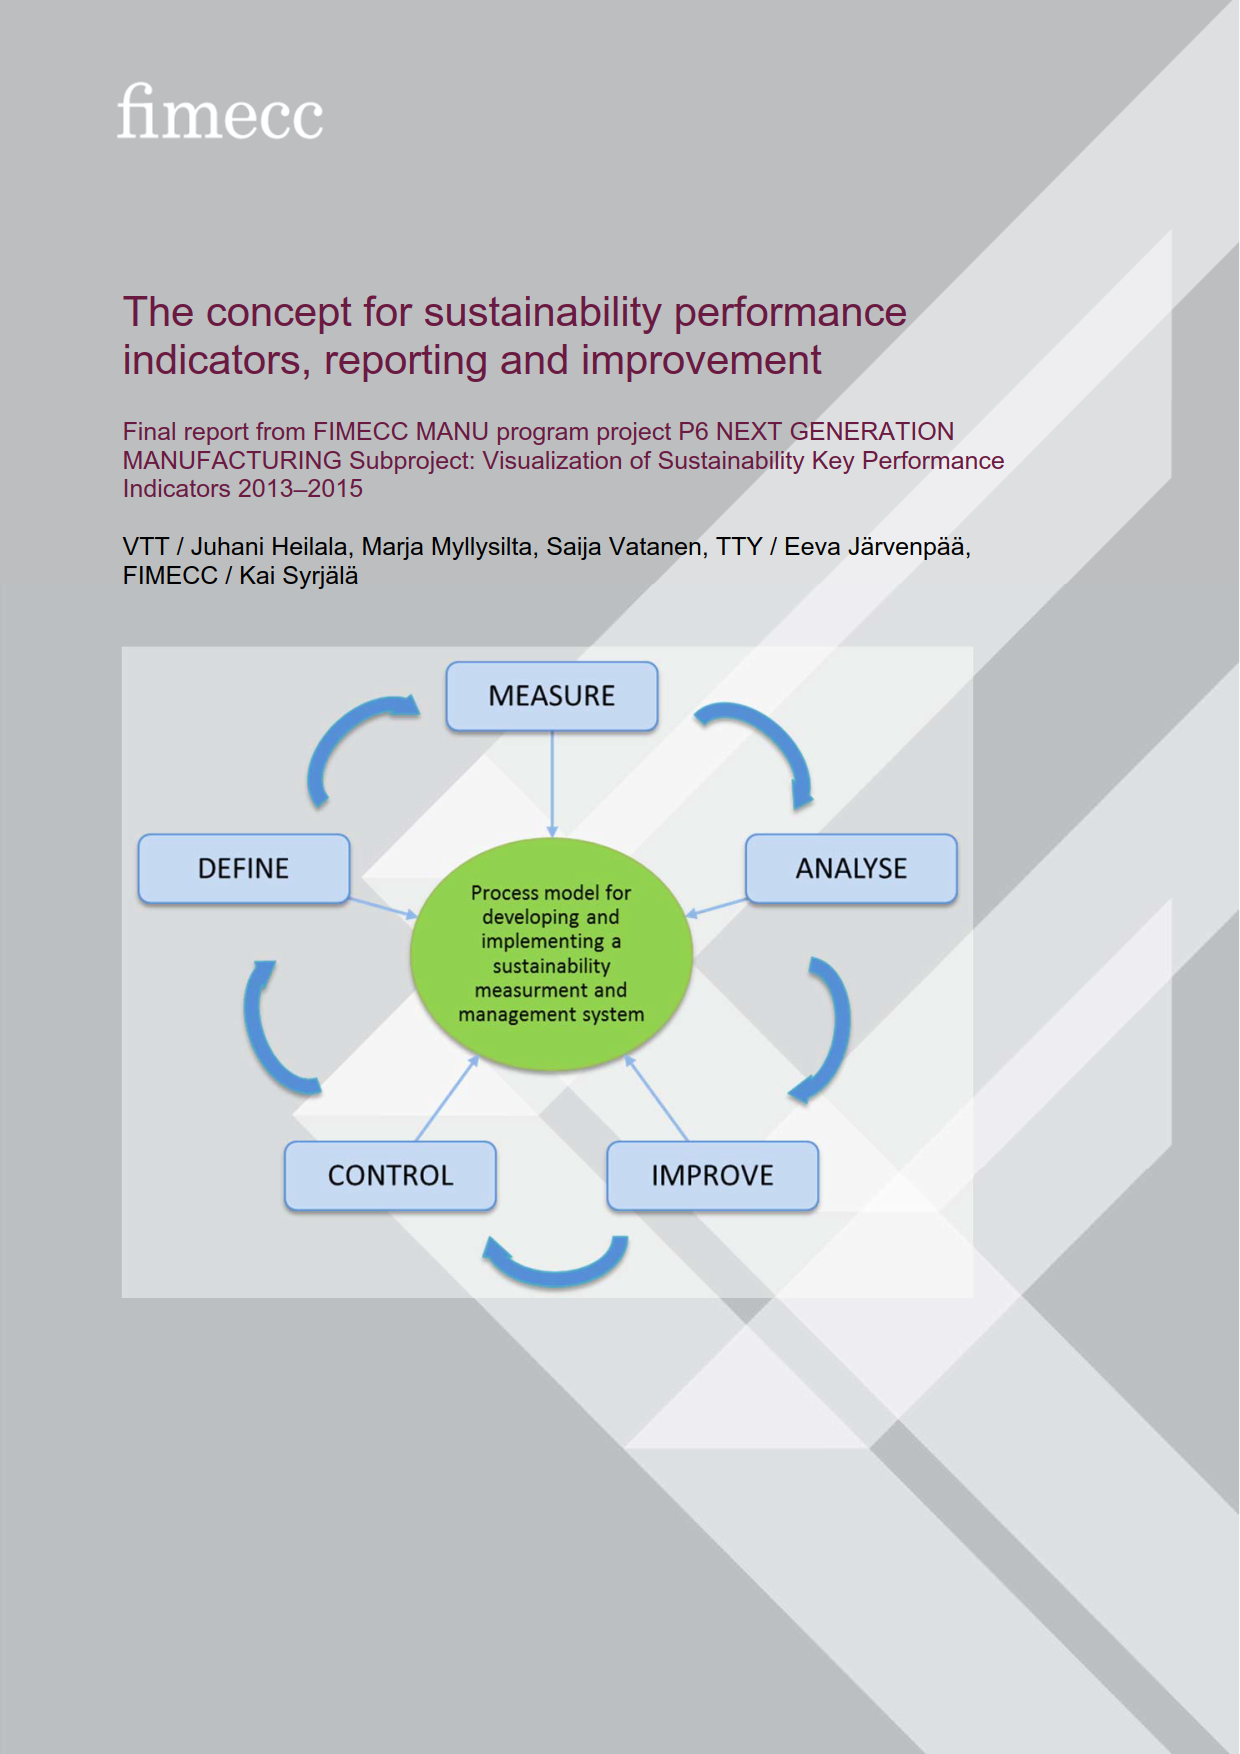 The concept for sustainability performance indicators